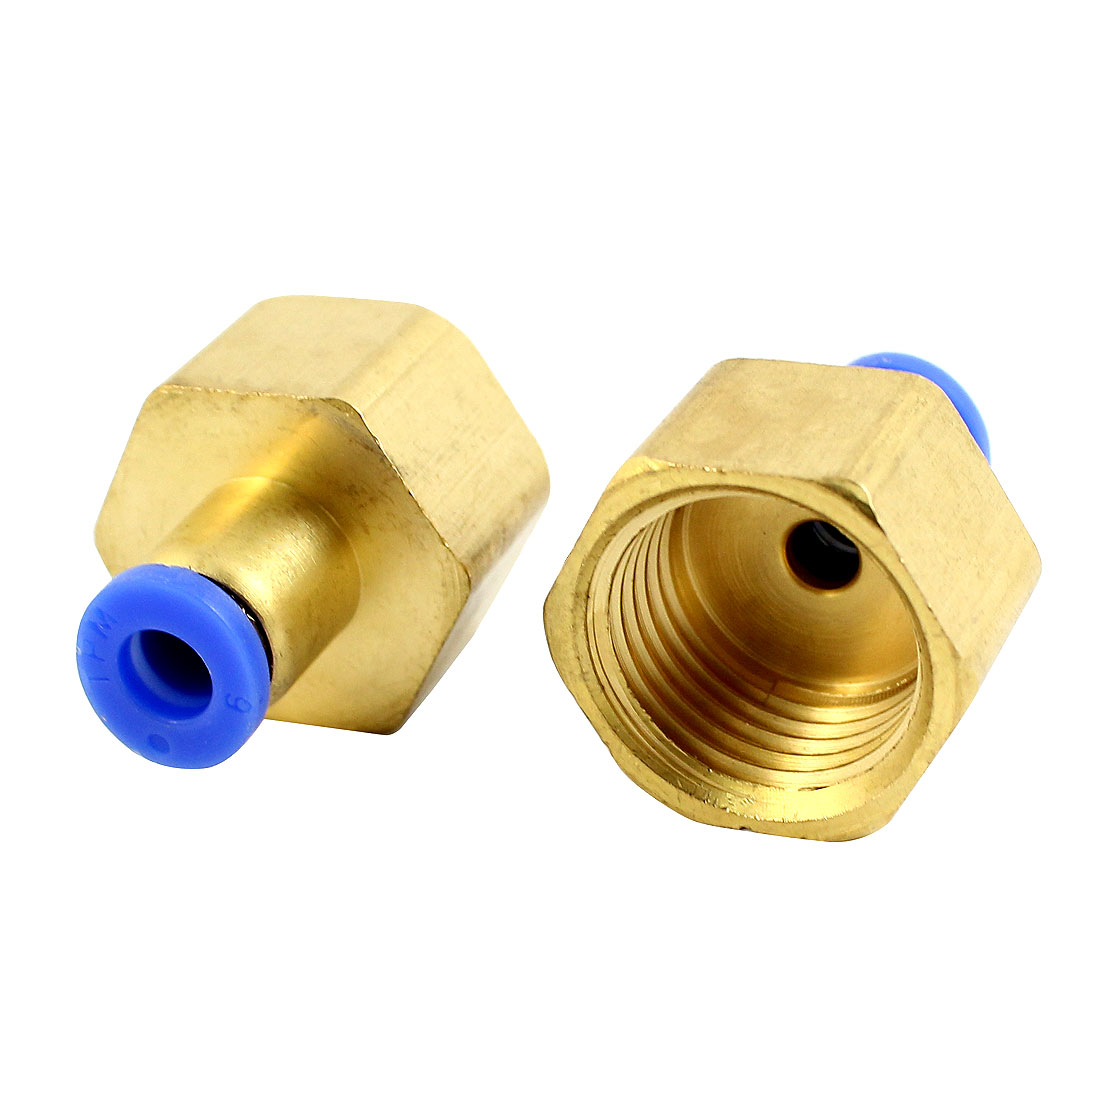 2 Pcs 1/2PT Female Thread 6mm Push In Pipe Straight Connector Air Pneumatic Quick Release Fitting Coupler